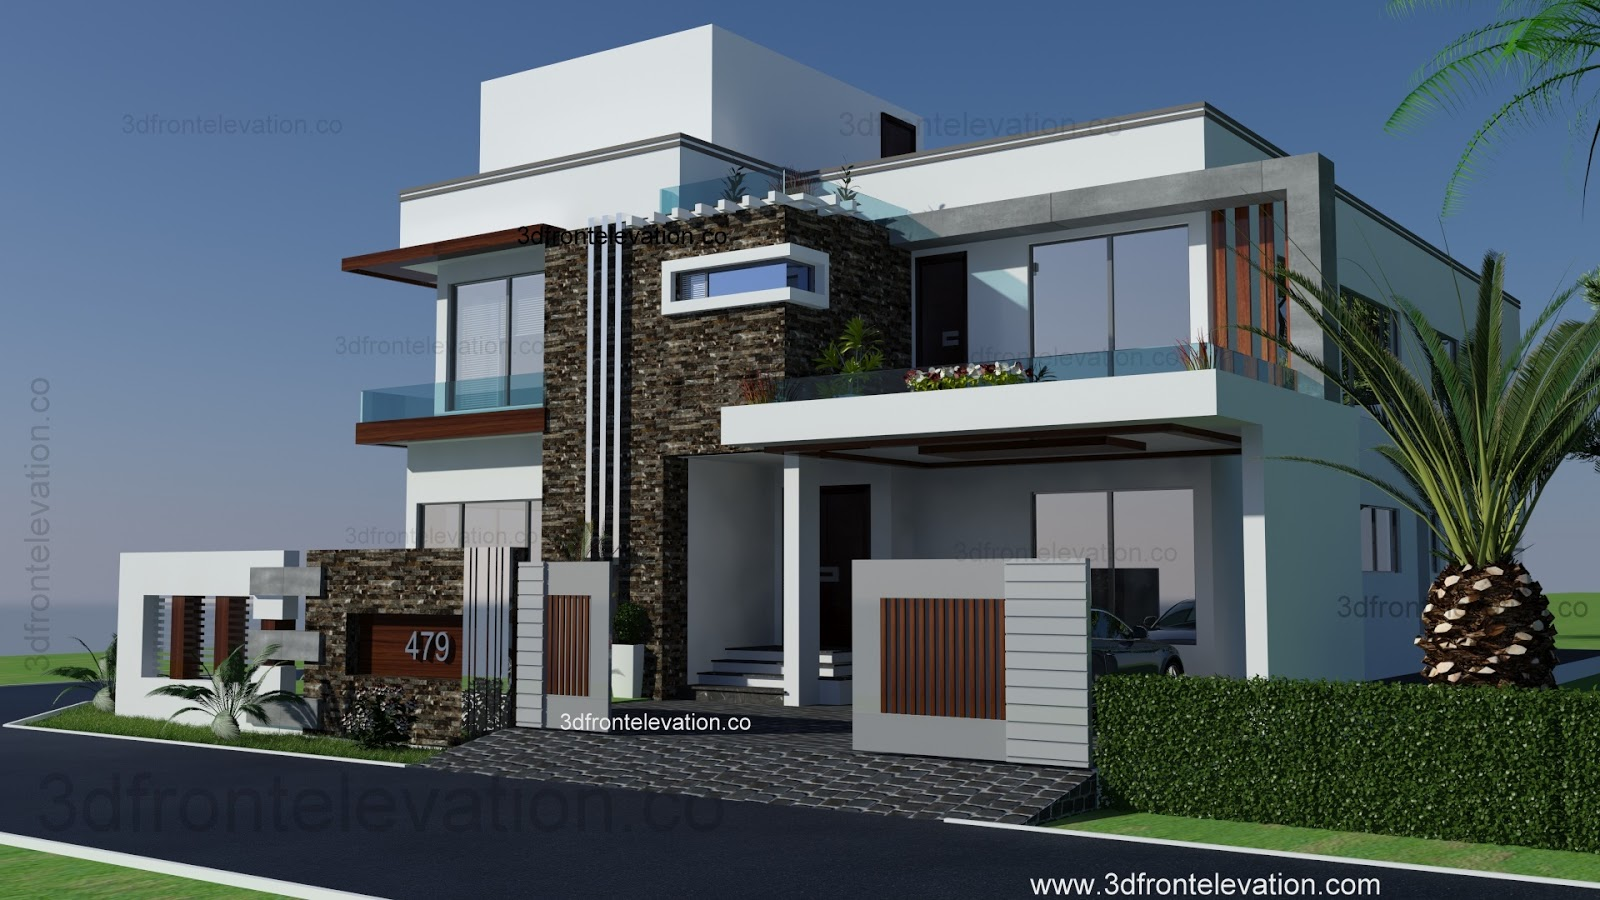 3d front portfolio Best home builder websites